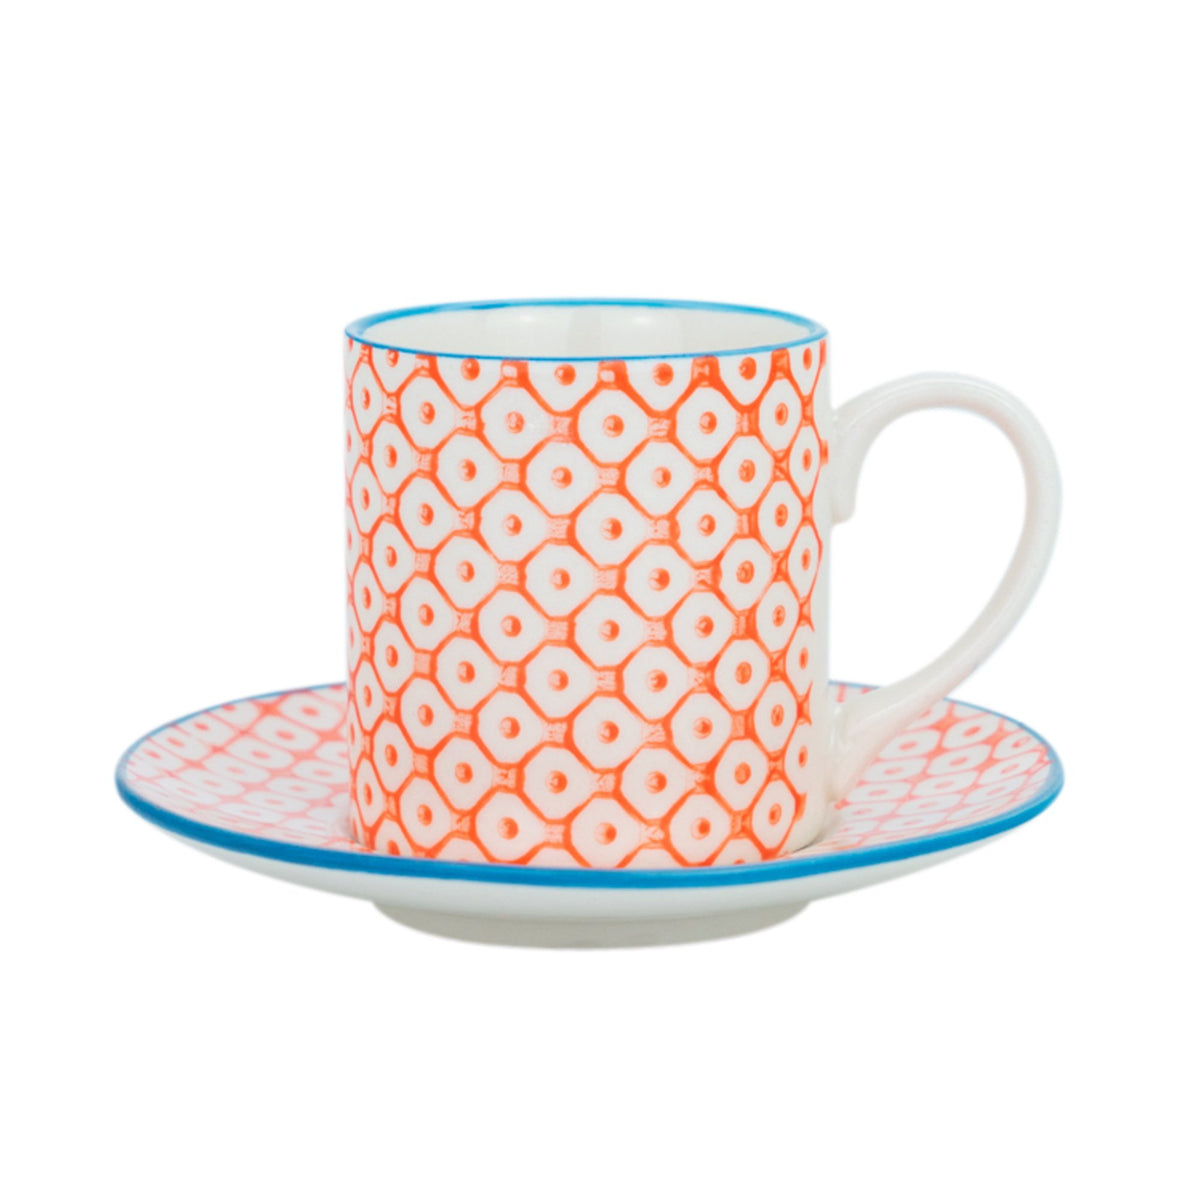 Nicola Spring Espresso Cups and Saucers